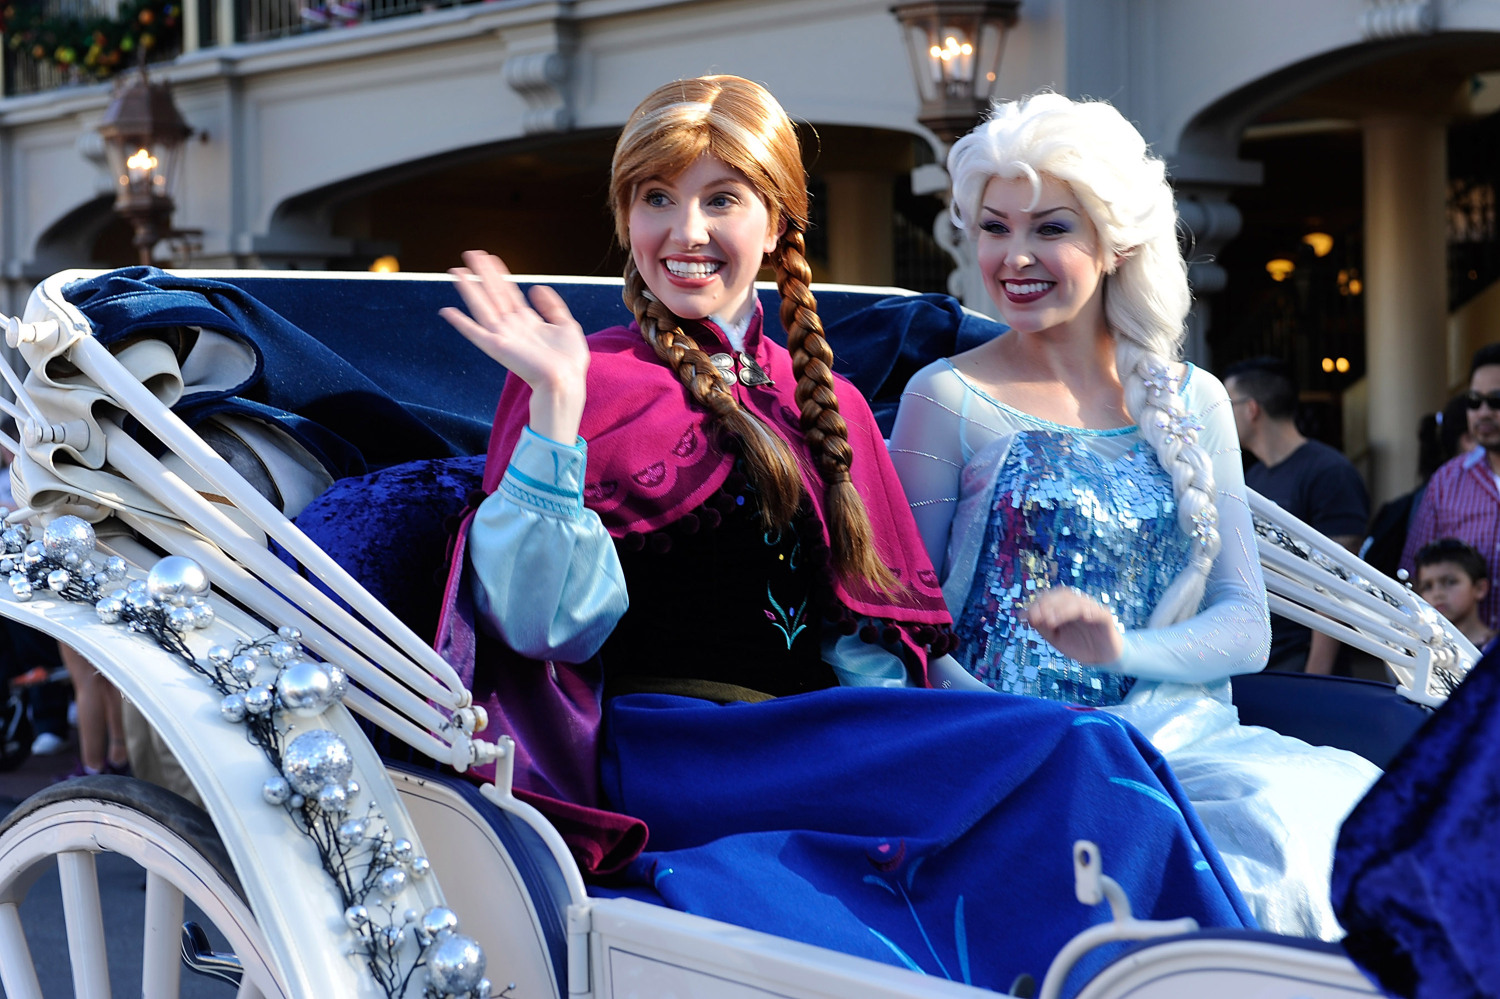 Anna and Elsa star in the new Frozen Ever After attraction at Walt Disney World's Epcot theme park.